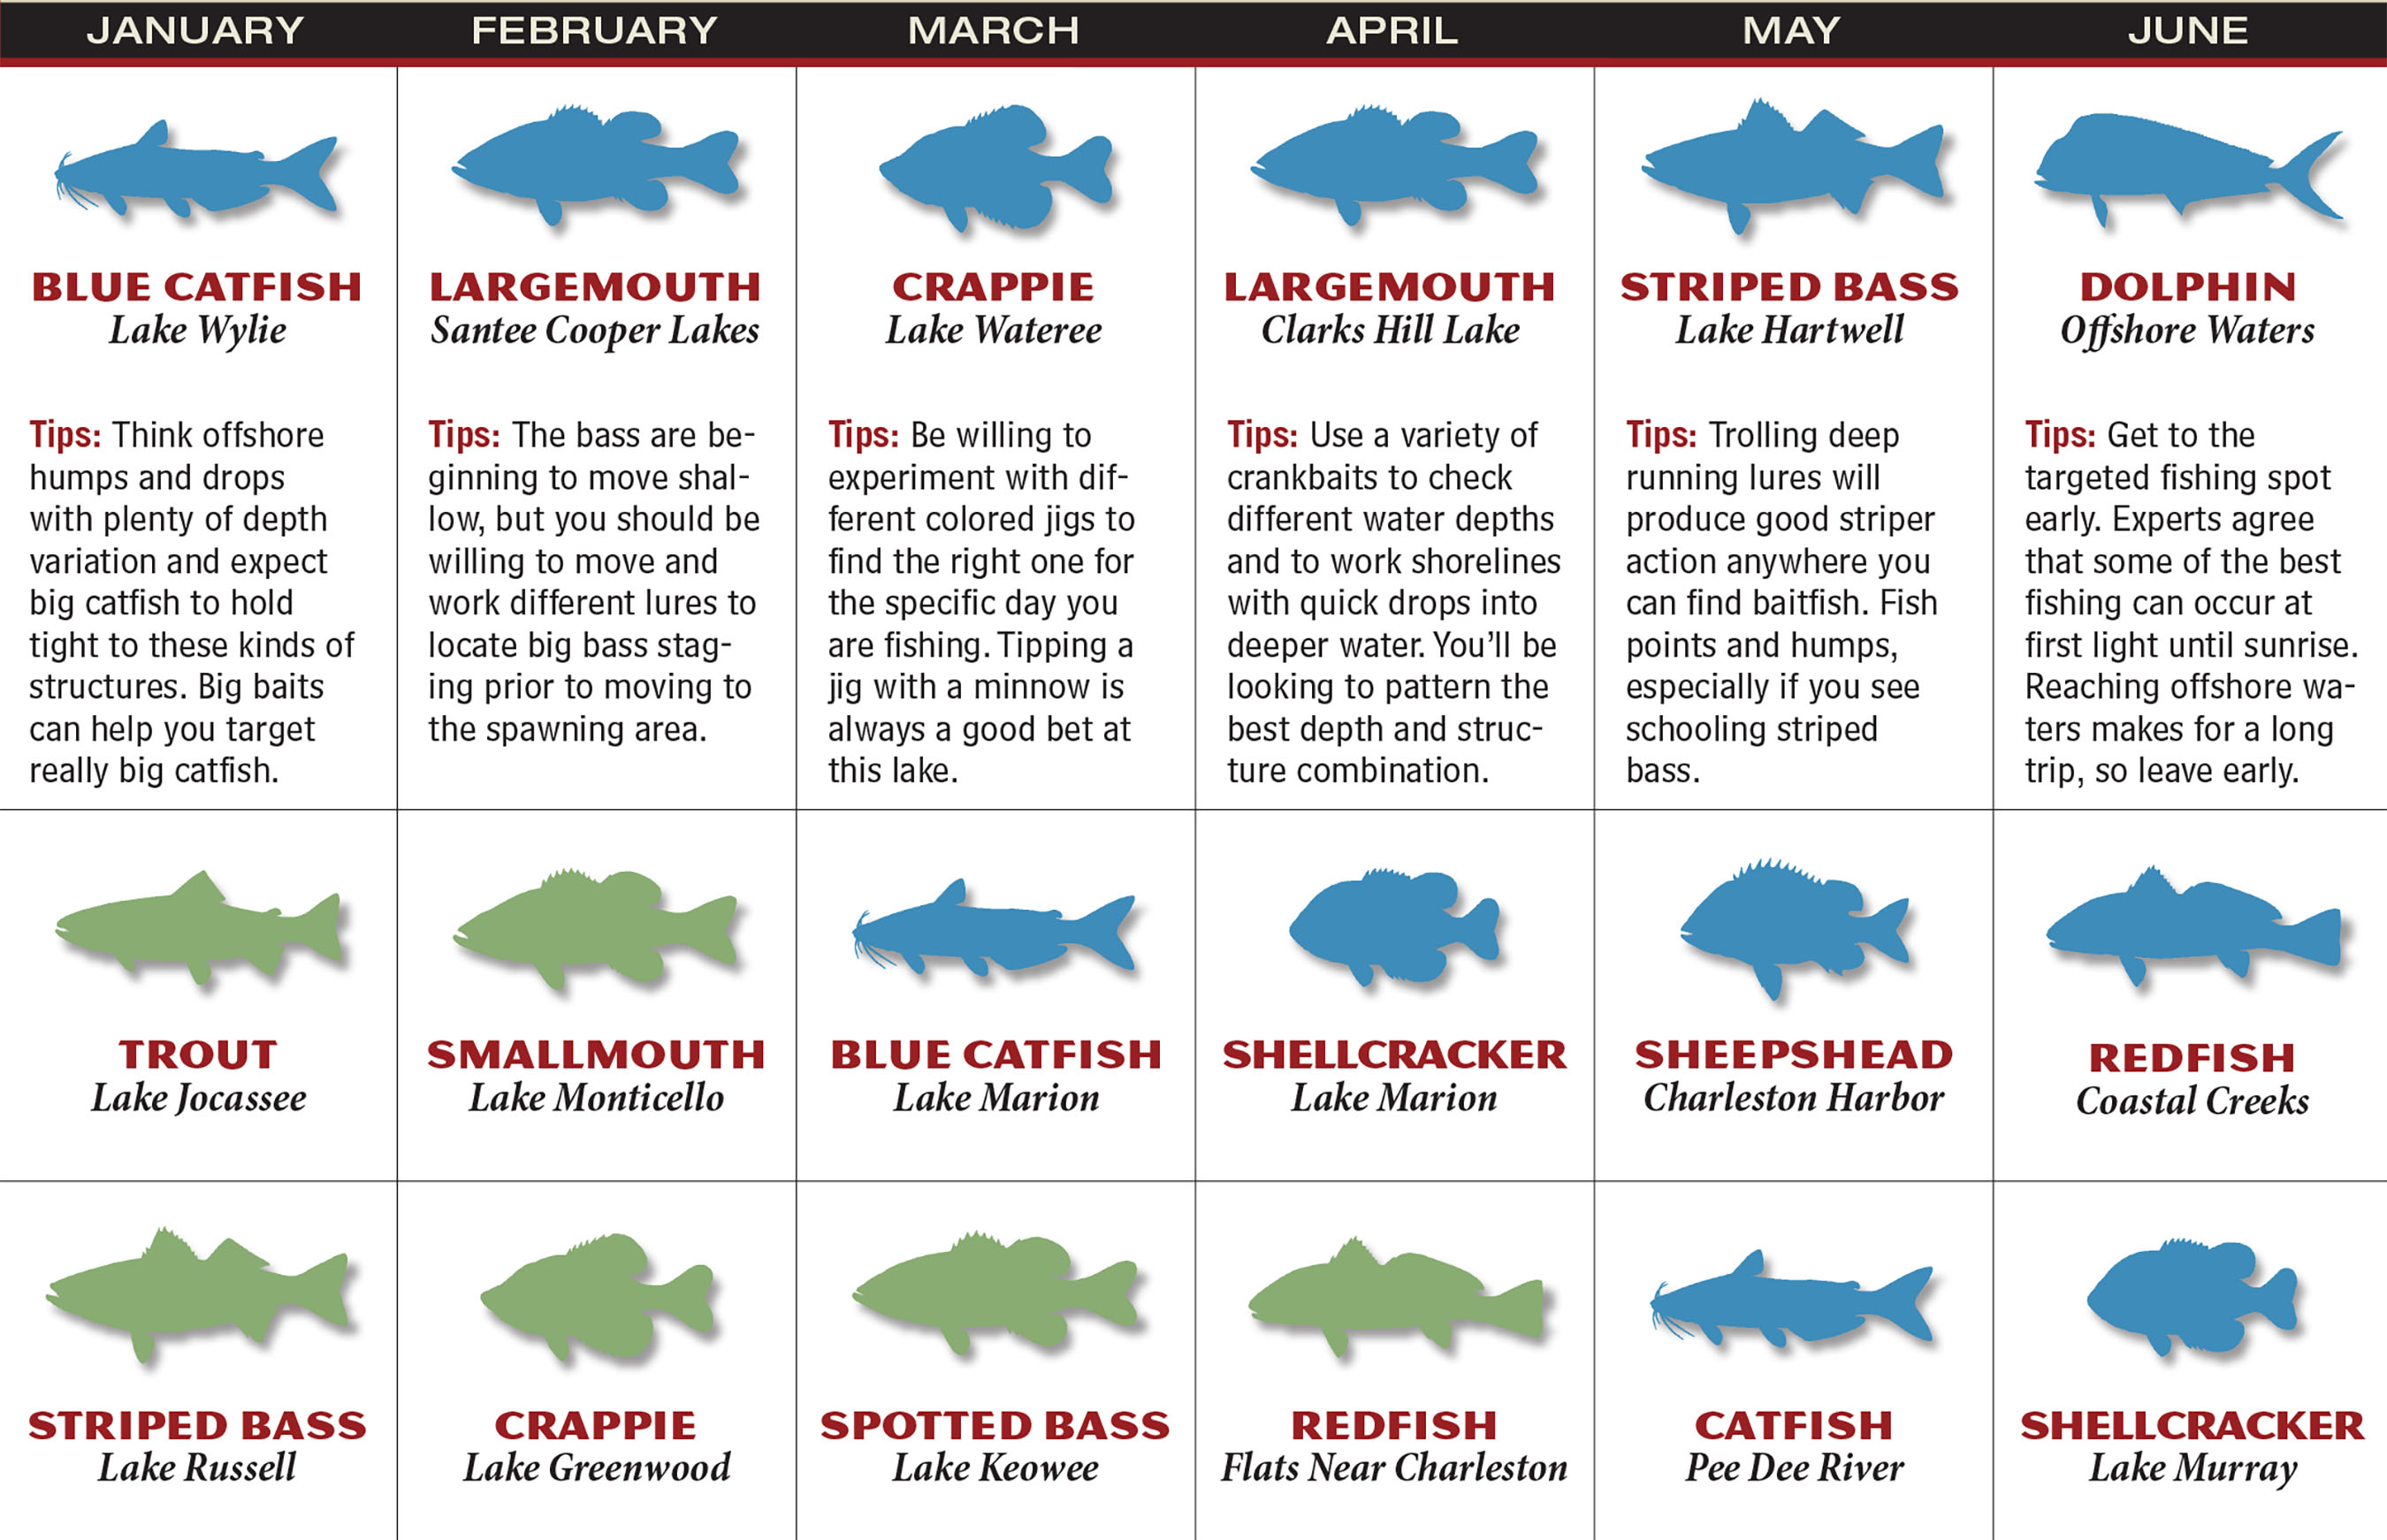 SC Fishing Forecast Calendar P1